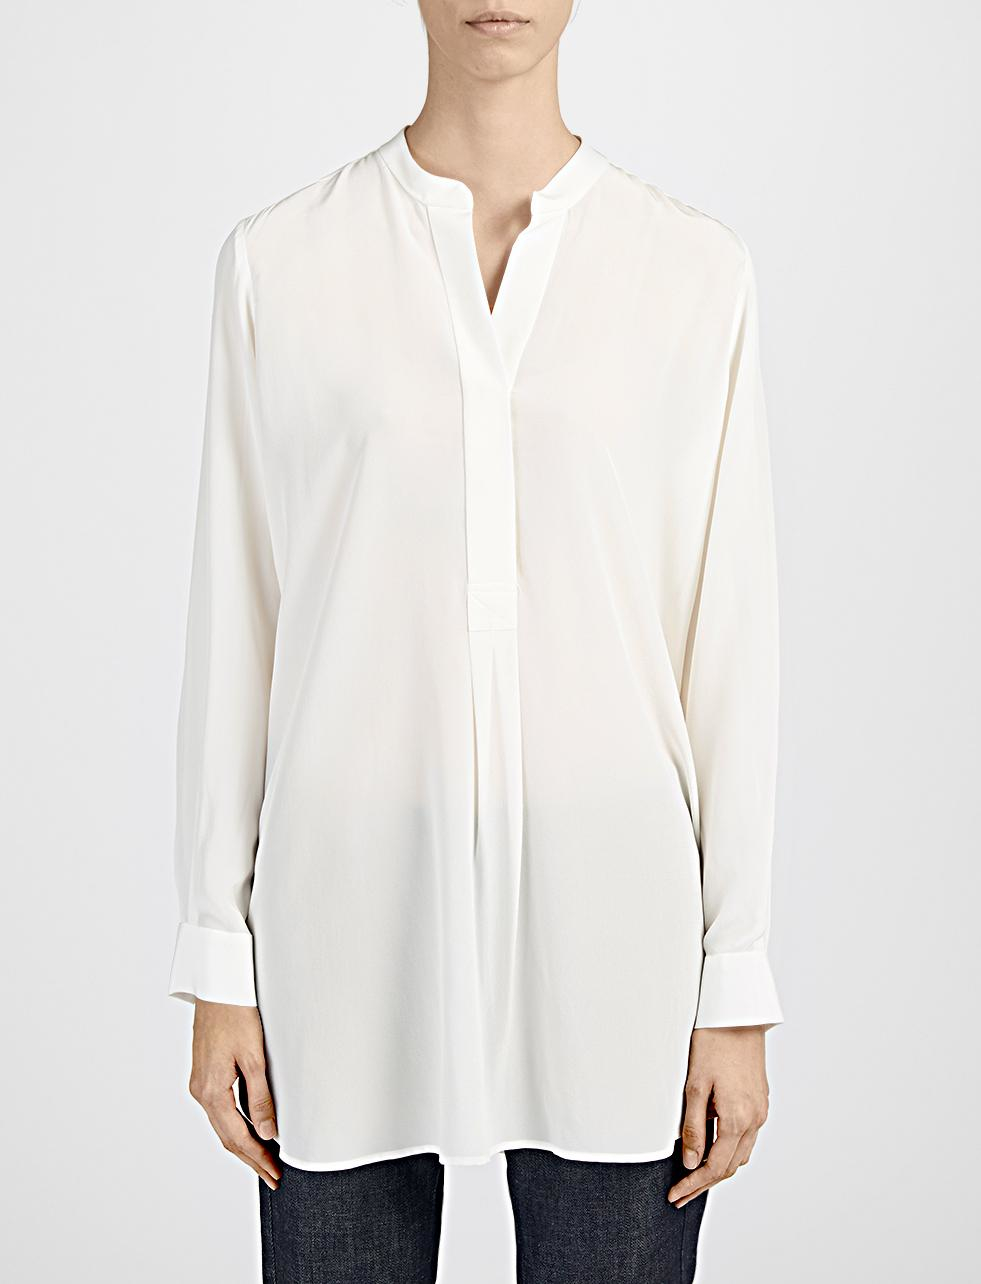 H And M Shirts And Blouses